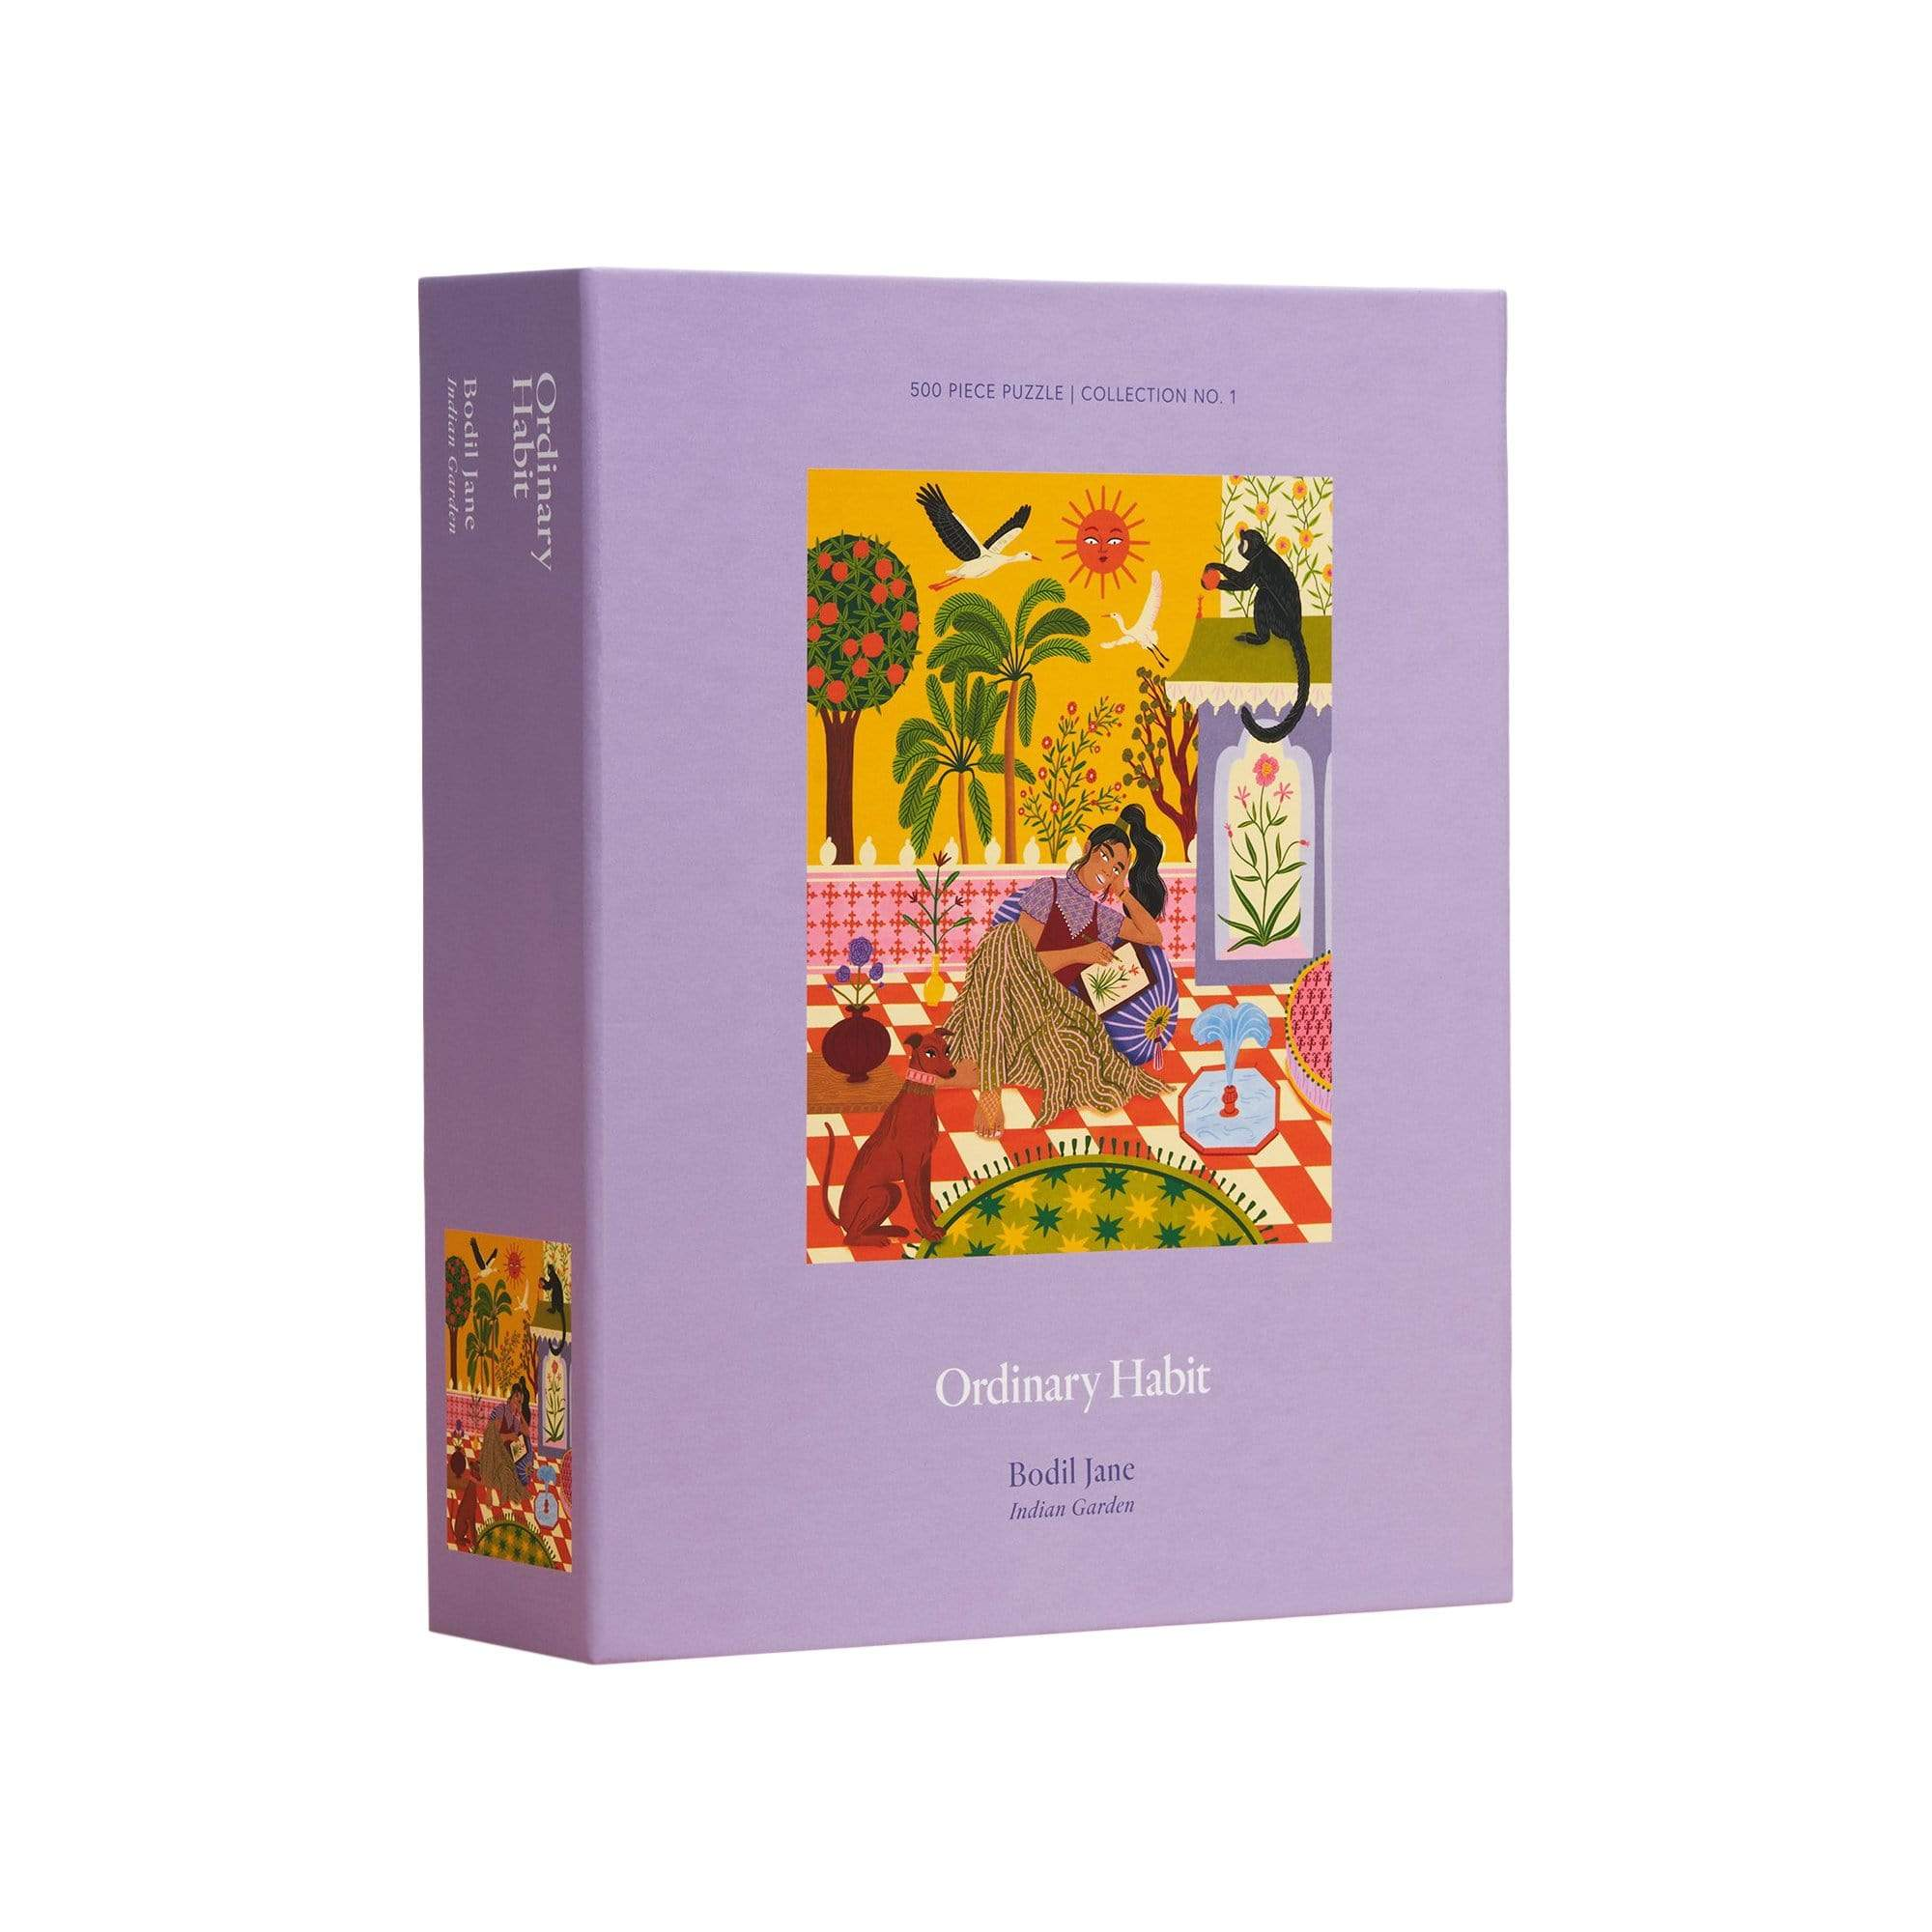 Indian Garden by Bodil Jane 500 Piece Puzzle